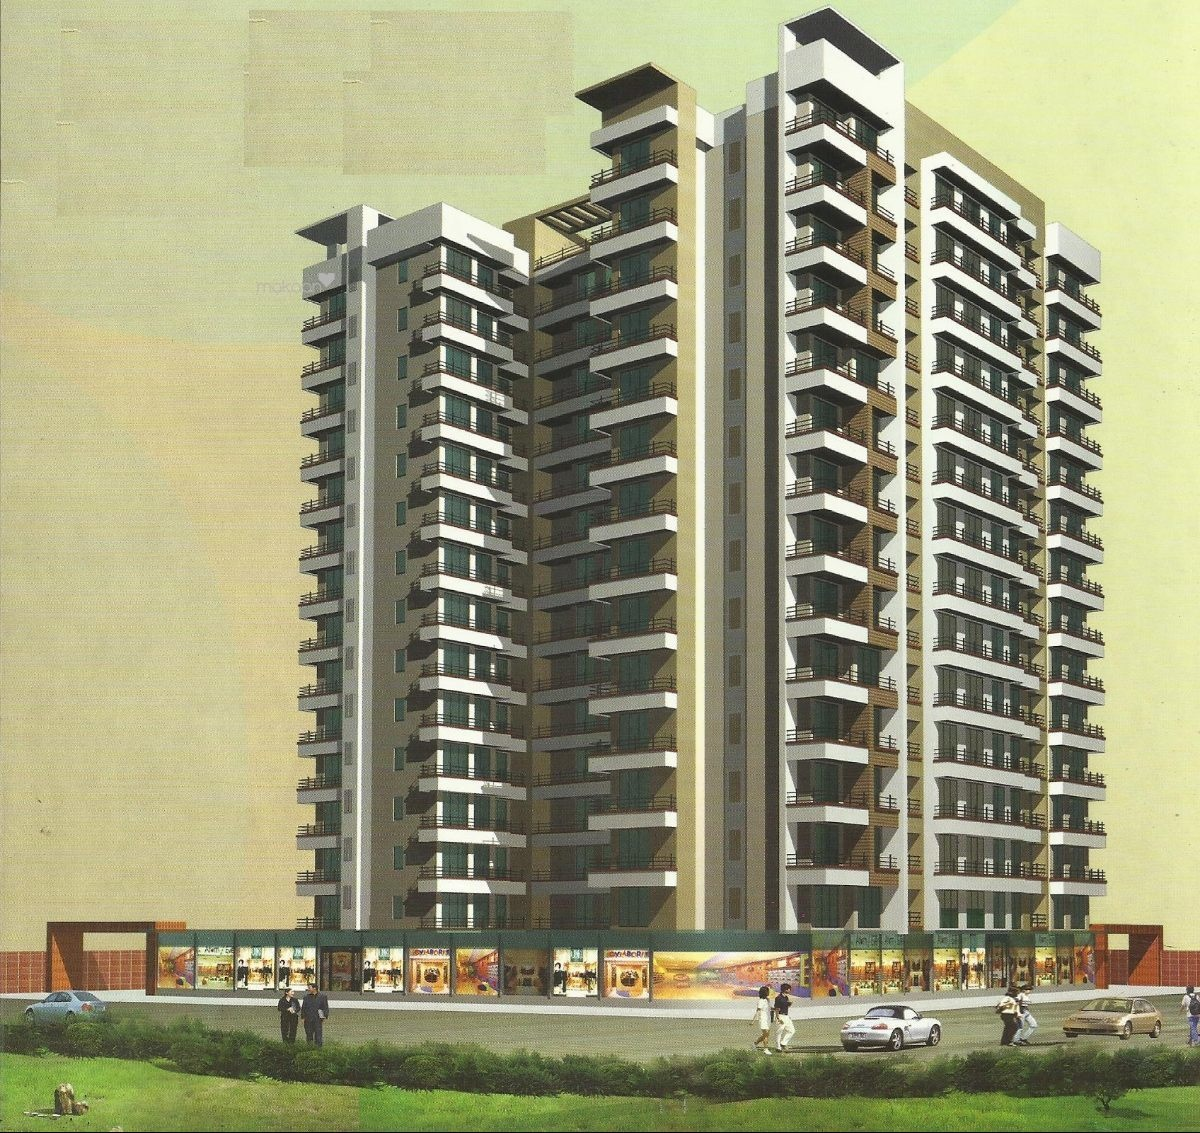 650 sq ft 1BHK 1BHK (650 sq ft) Property By Vijay Estate Agency In Valley Shilp, Kharghar